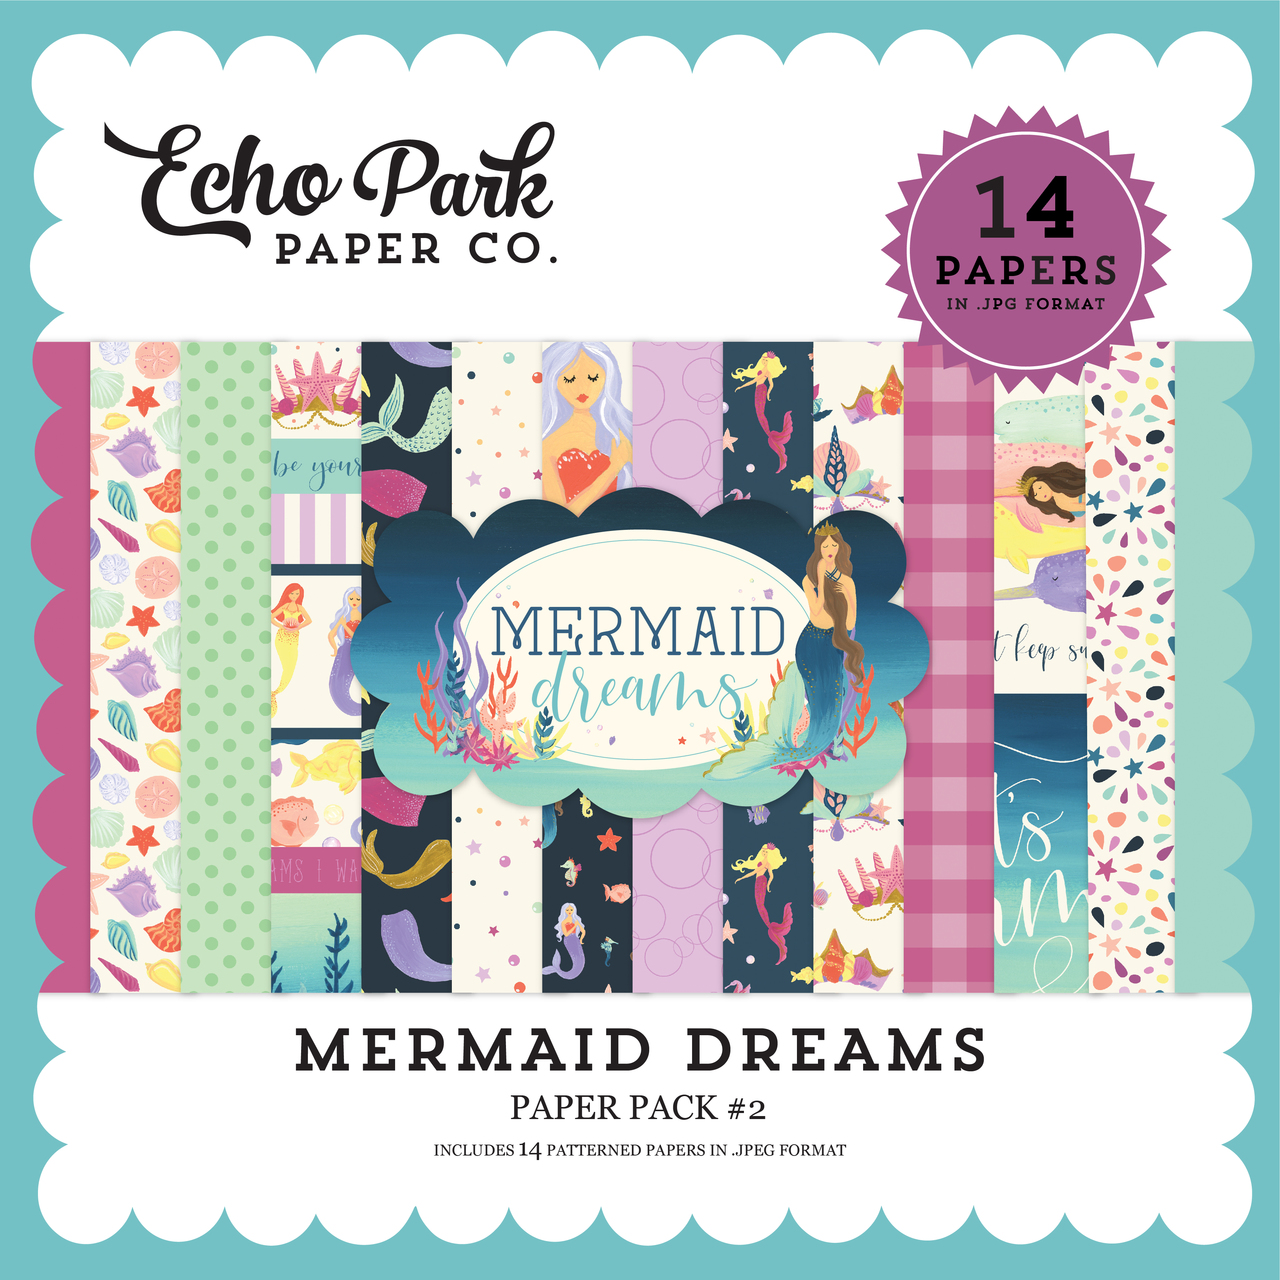 Mermaid Dreams Paper Pack #2